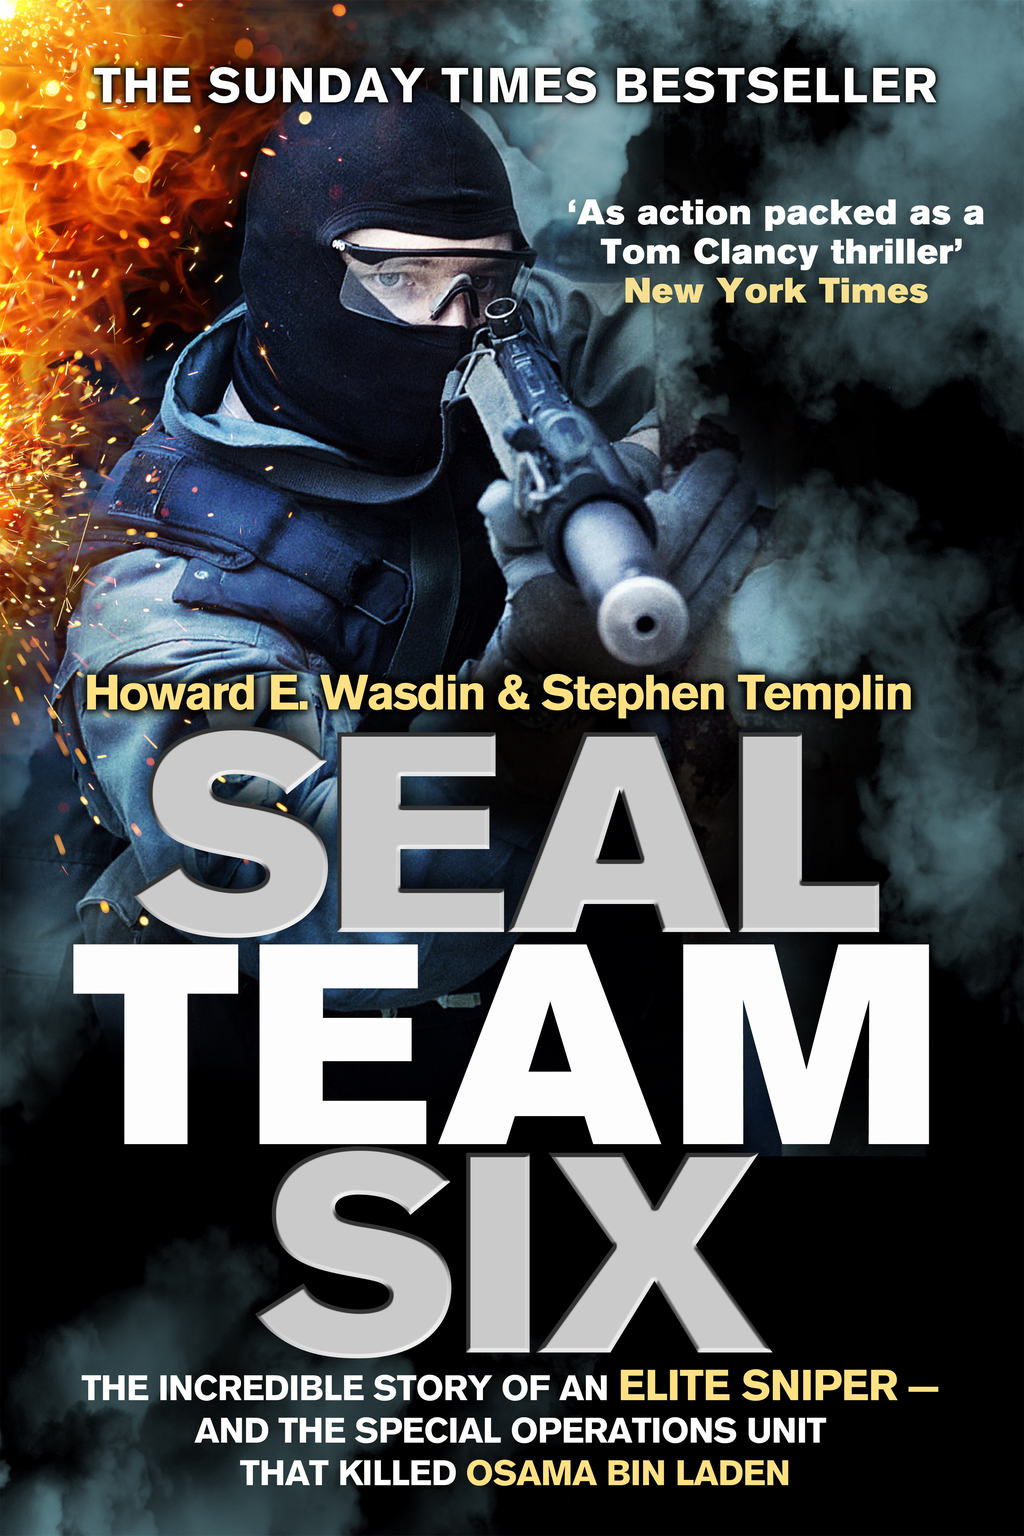 Seal Team Six The incredible story of an elite sniper - and the special operations unit that killed Osama Bin Laden